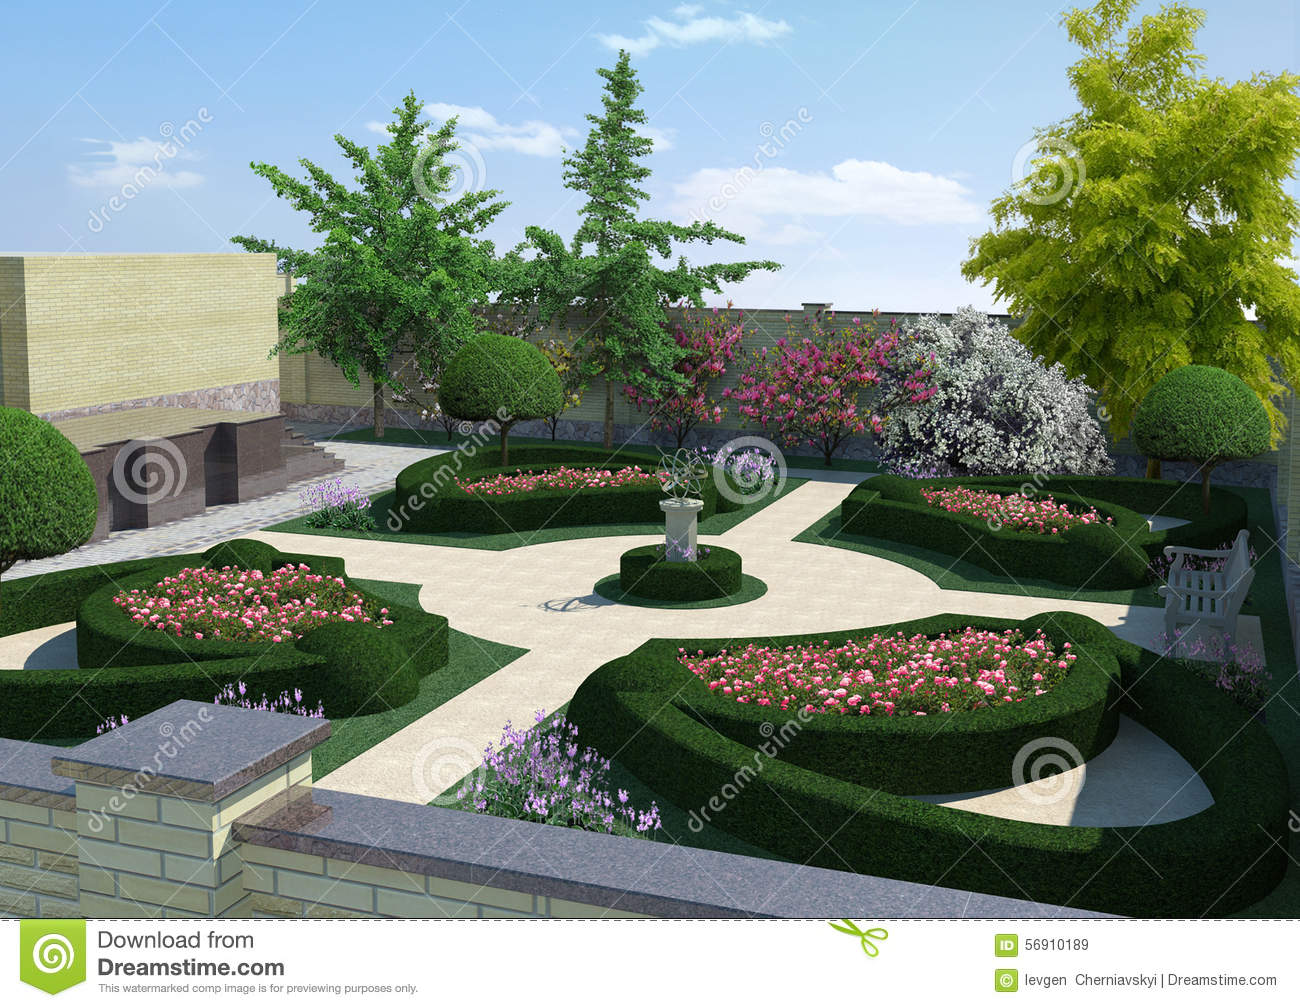 Courtyard landscaping classic style 3d rendering stock for Classic house landscape